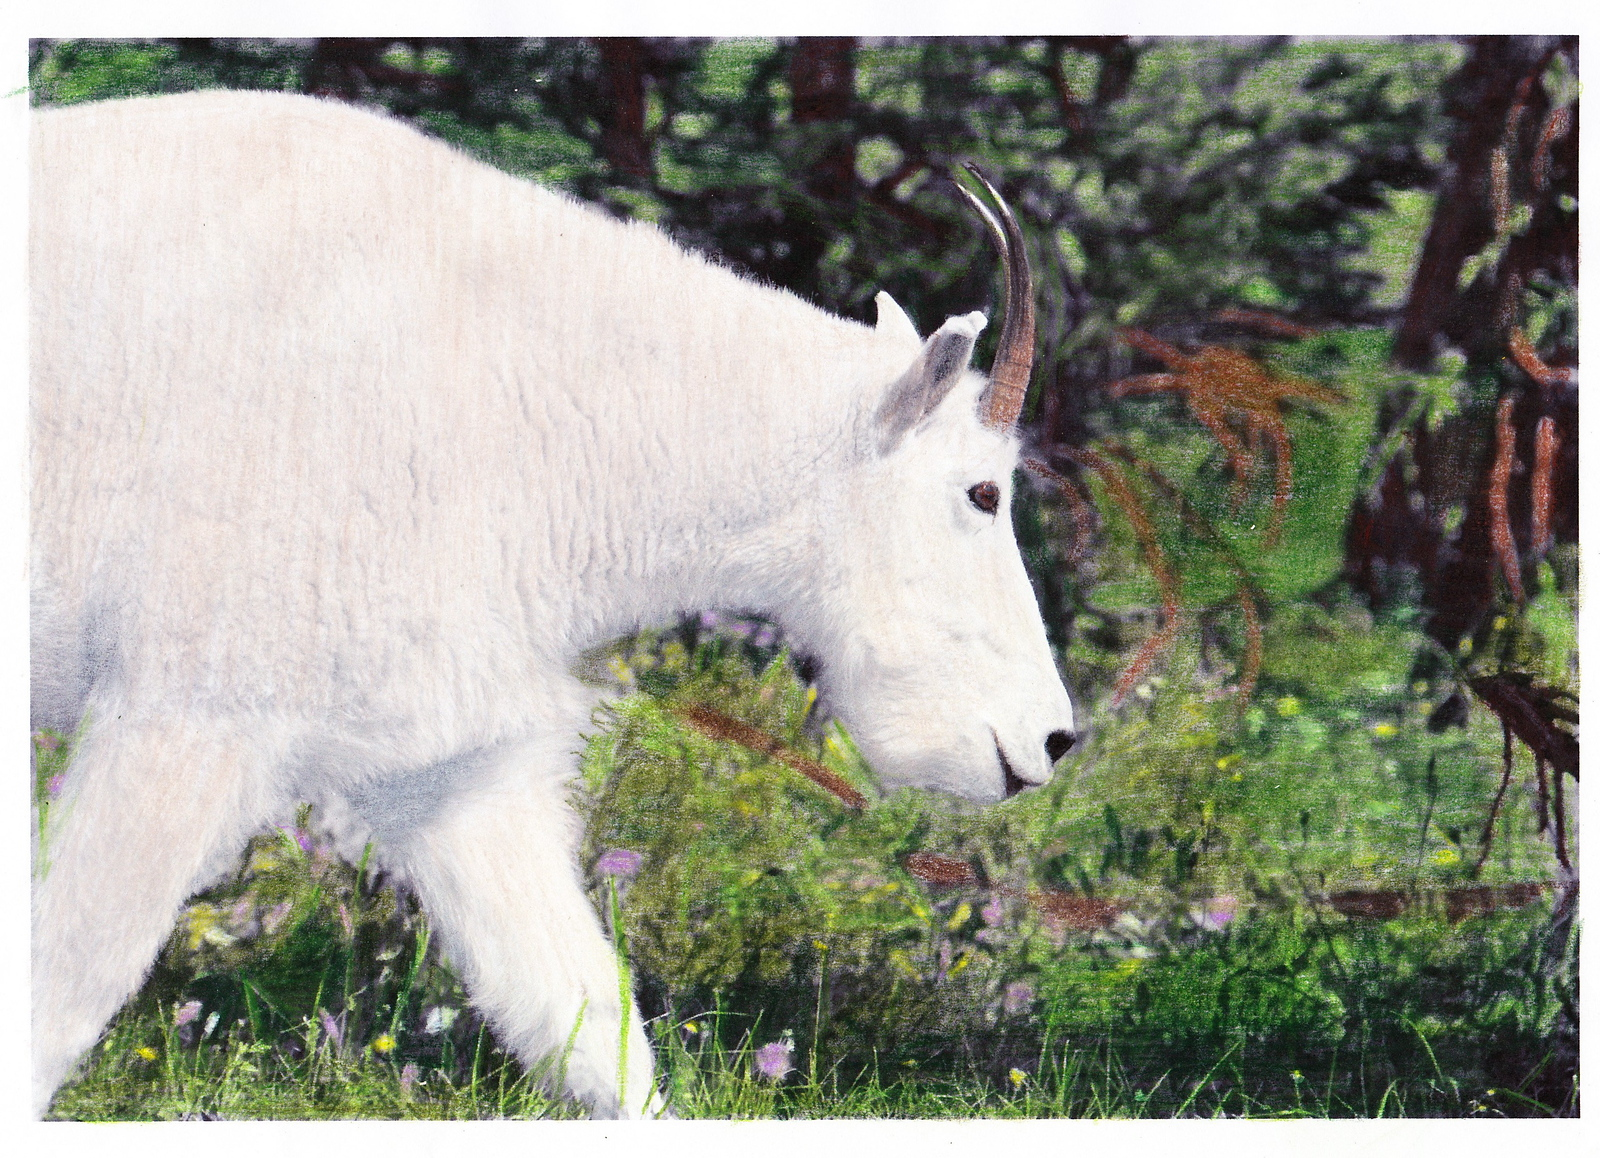 A mountain goat grazing in a field of wildflowers